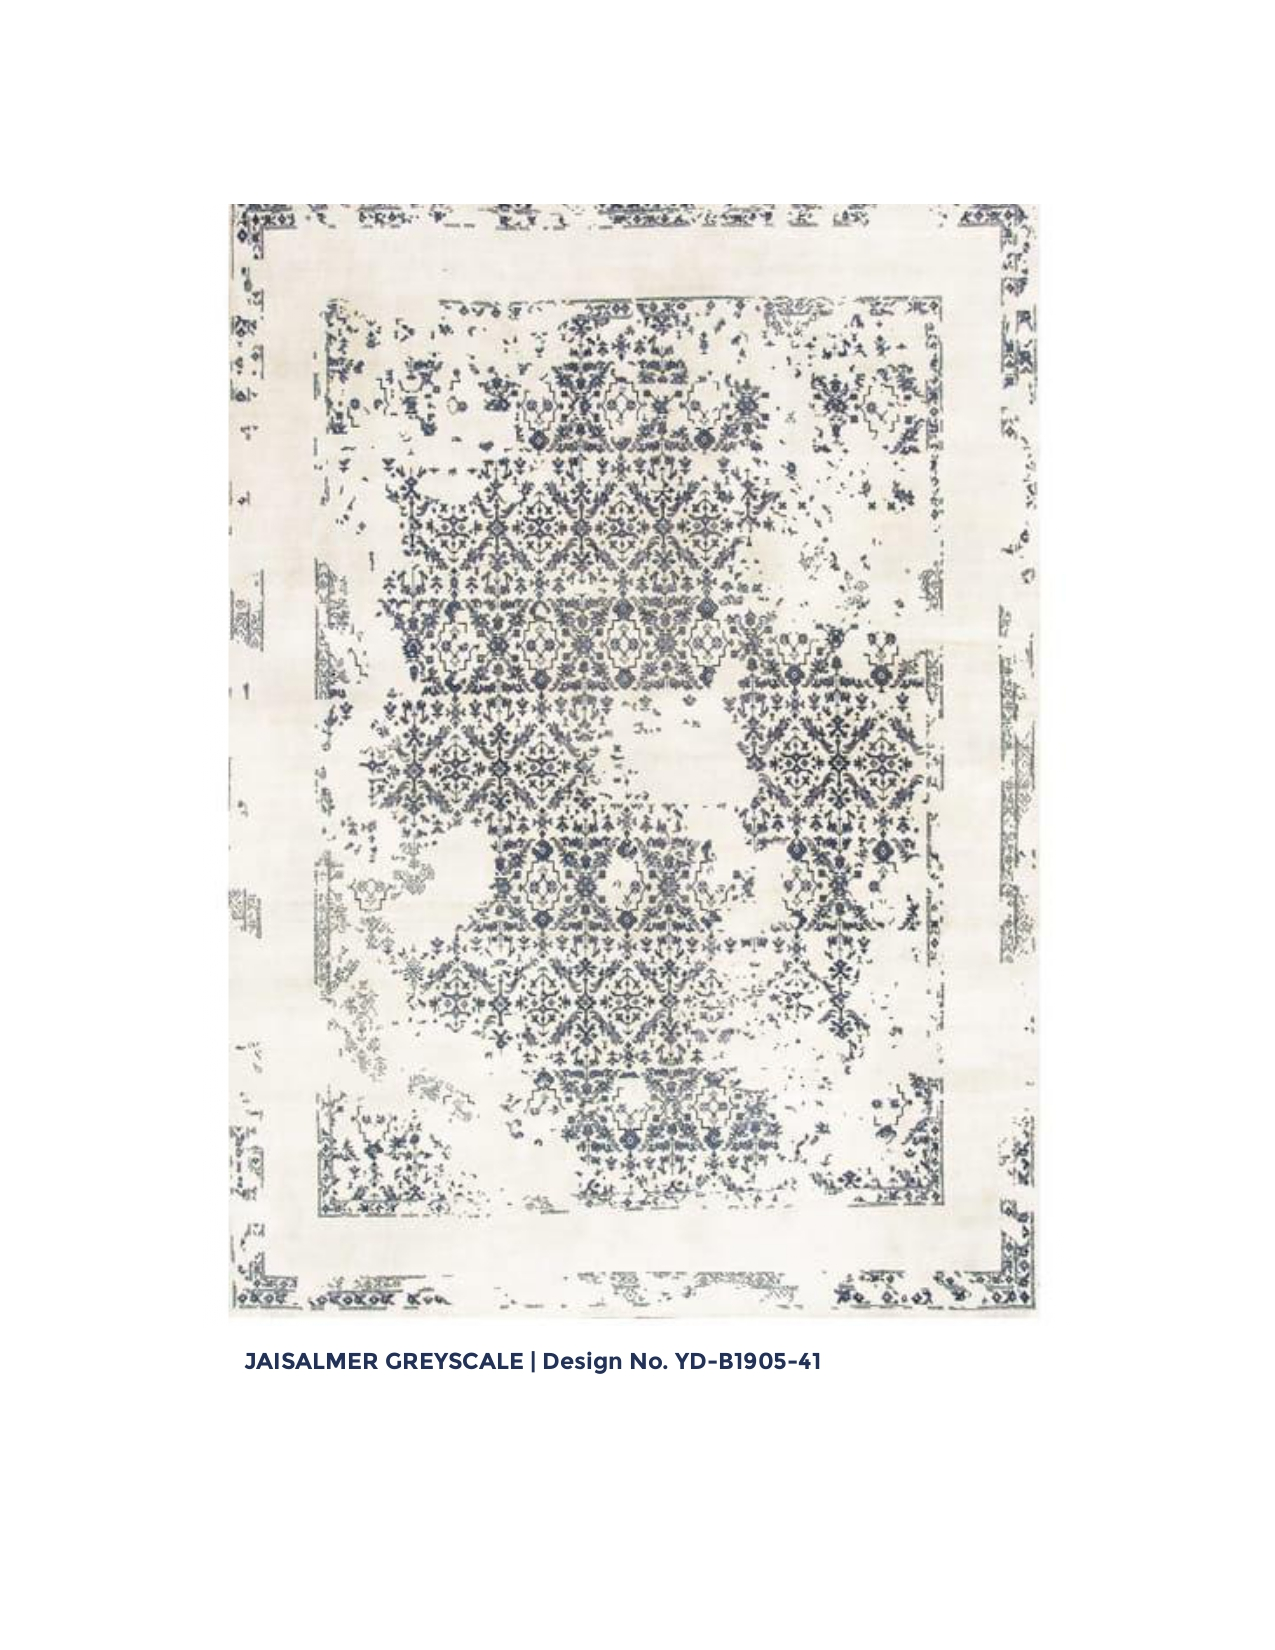 Hand_Knotted_CC_1905_46.jpg